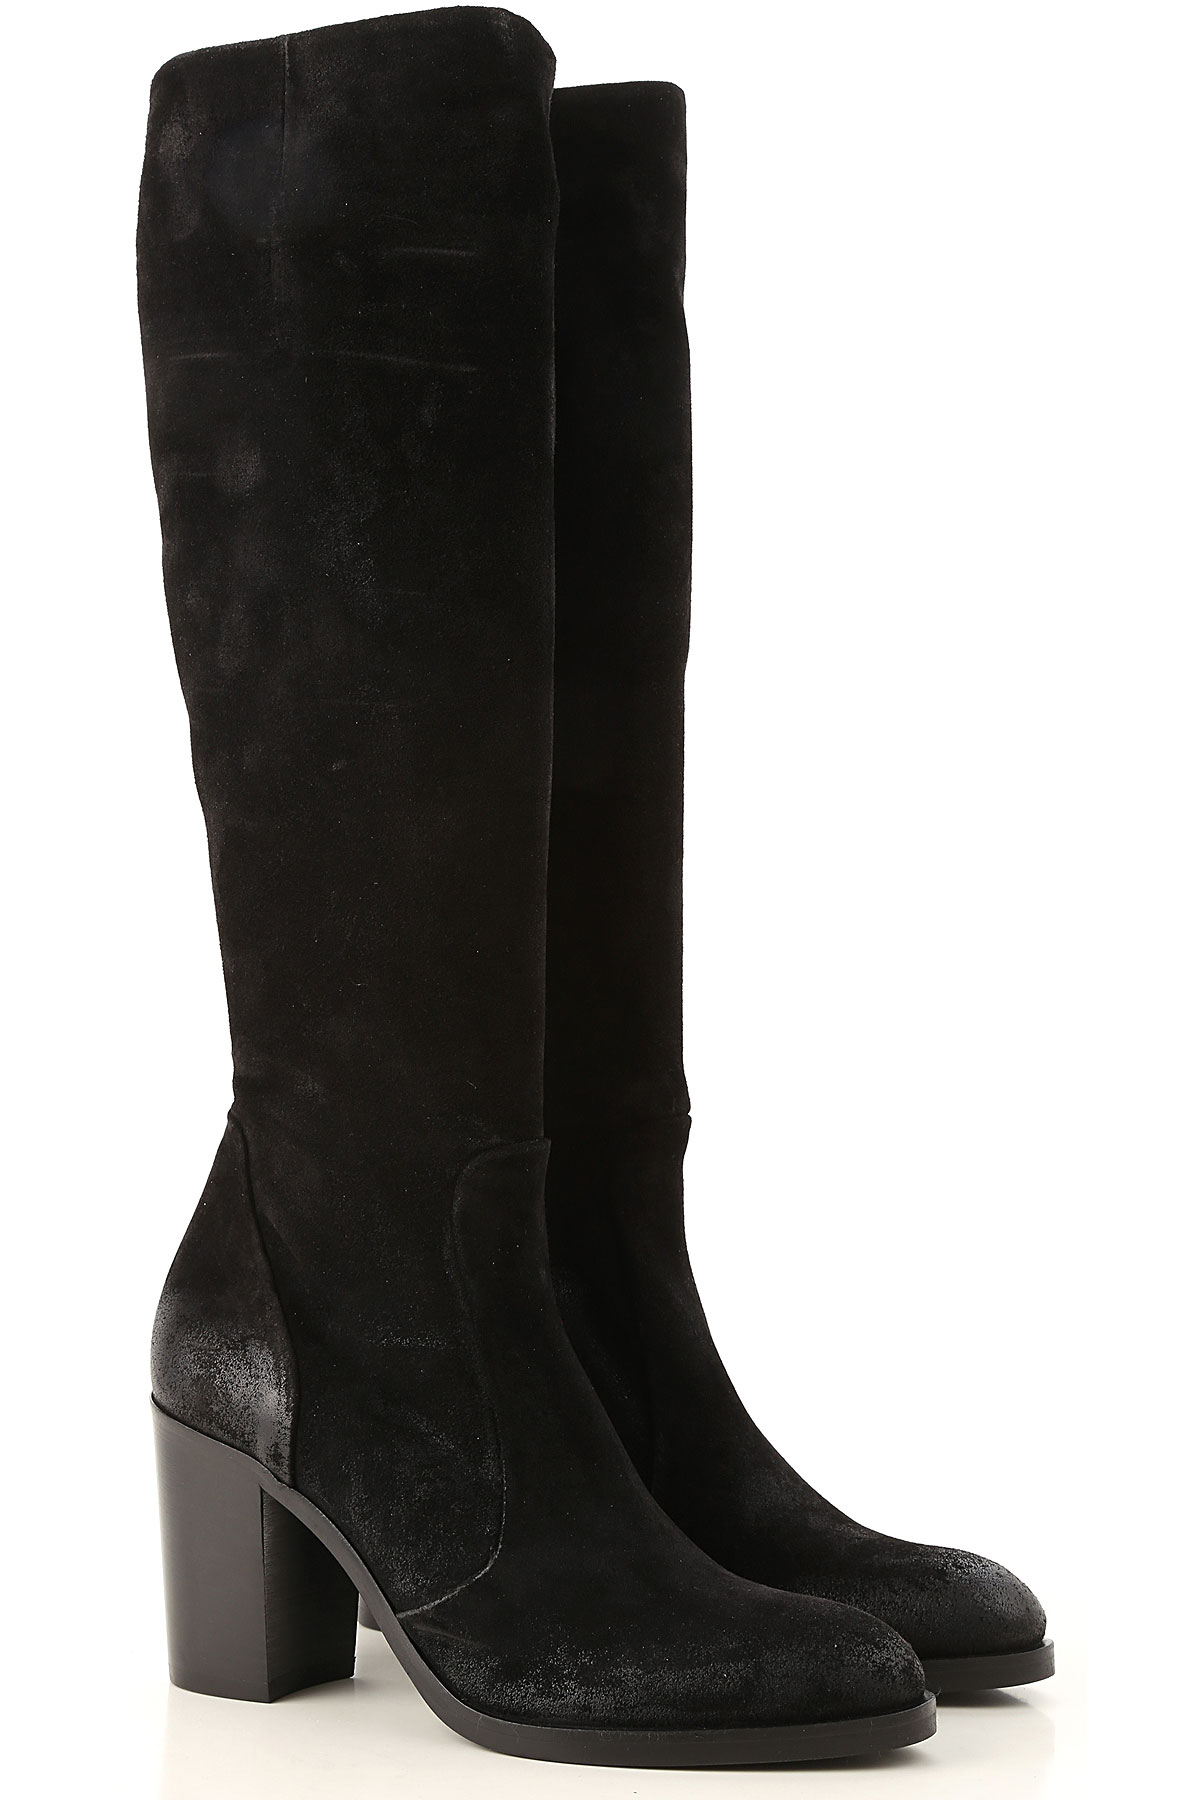 Image of Strategia Boots for Women, Booties, Black, suede, 2017, 10 6 7 8 9